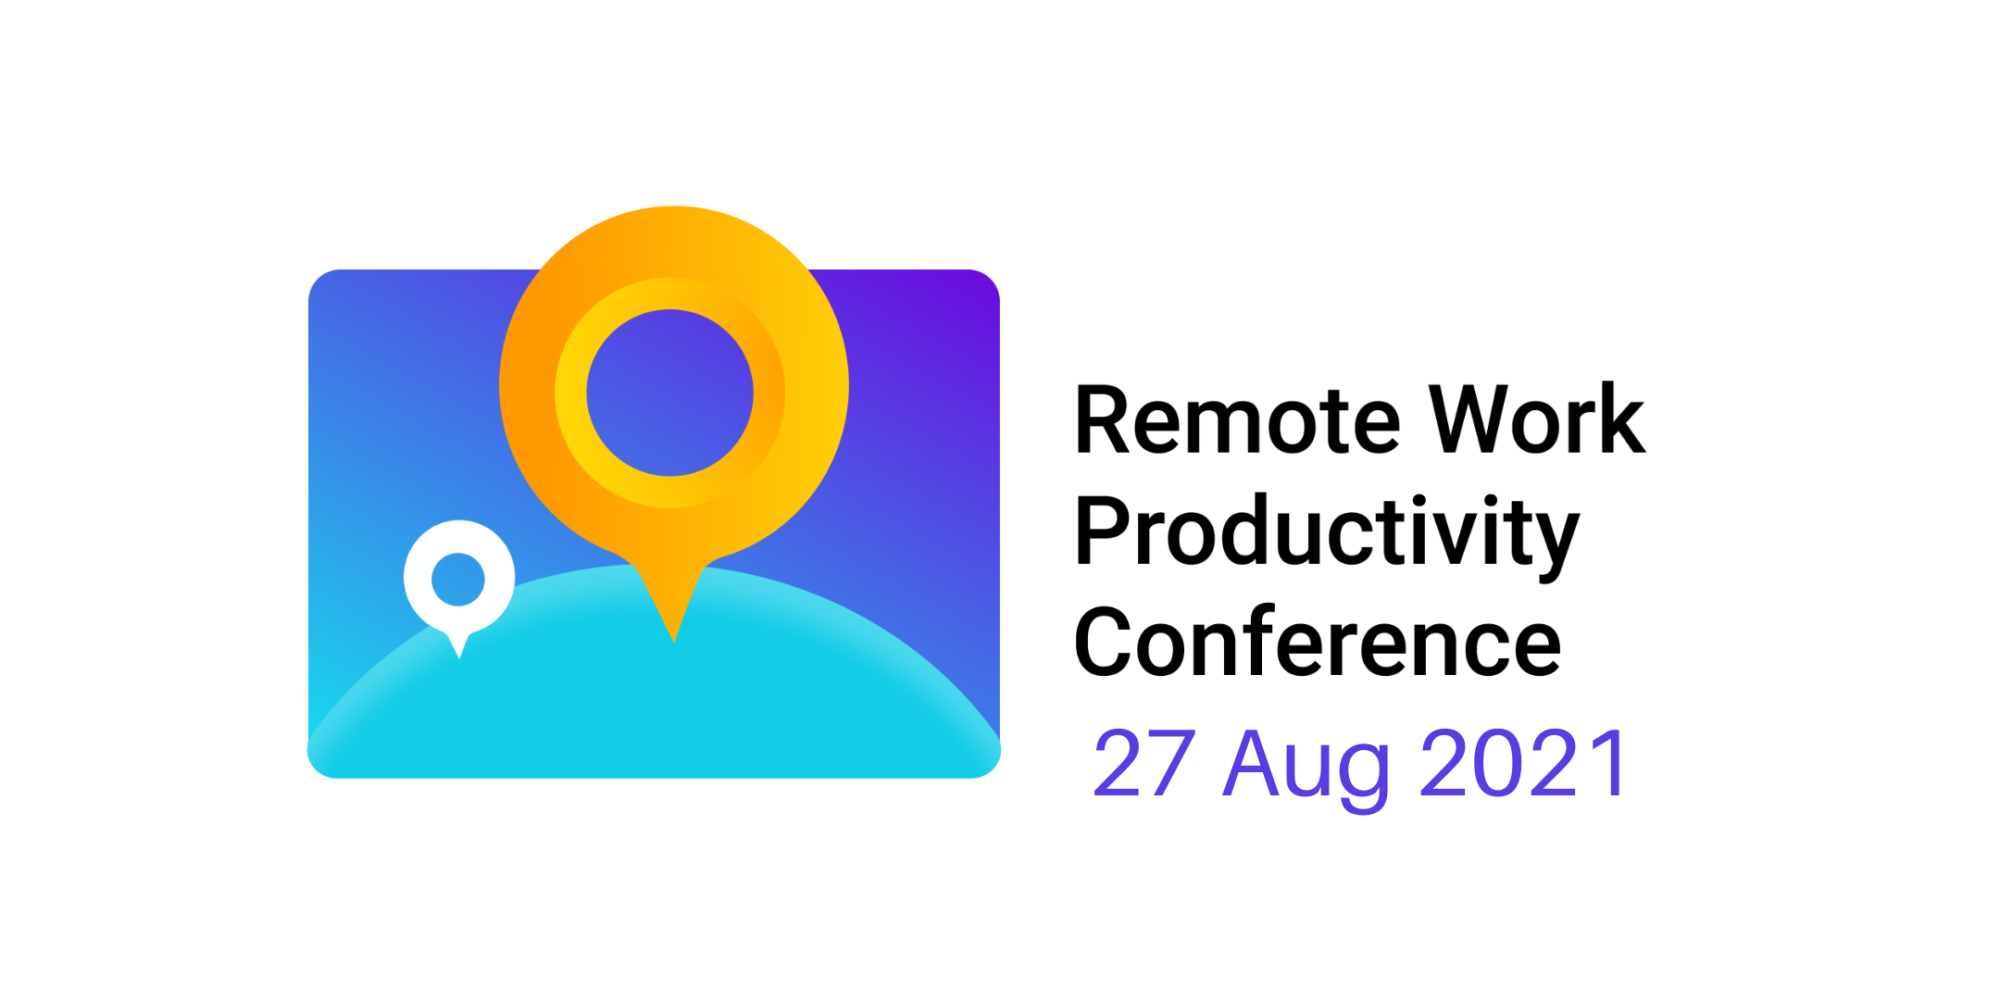 Remote Work Productivity Conference